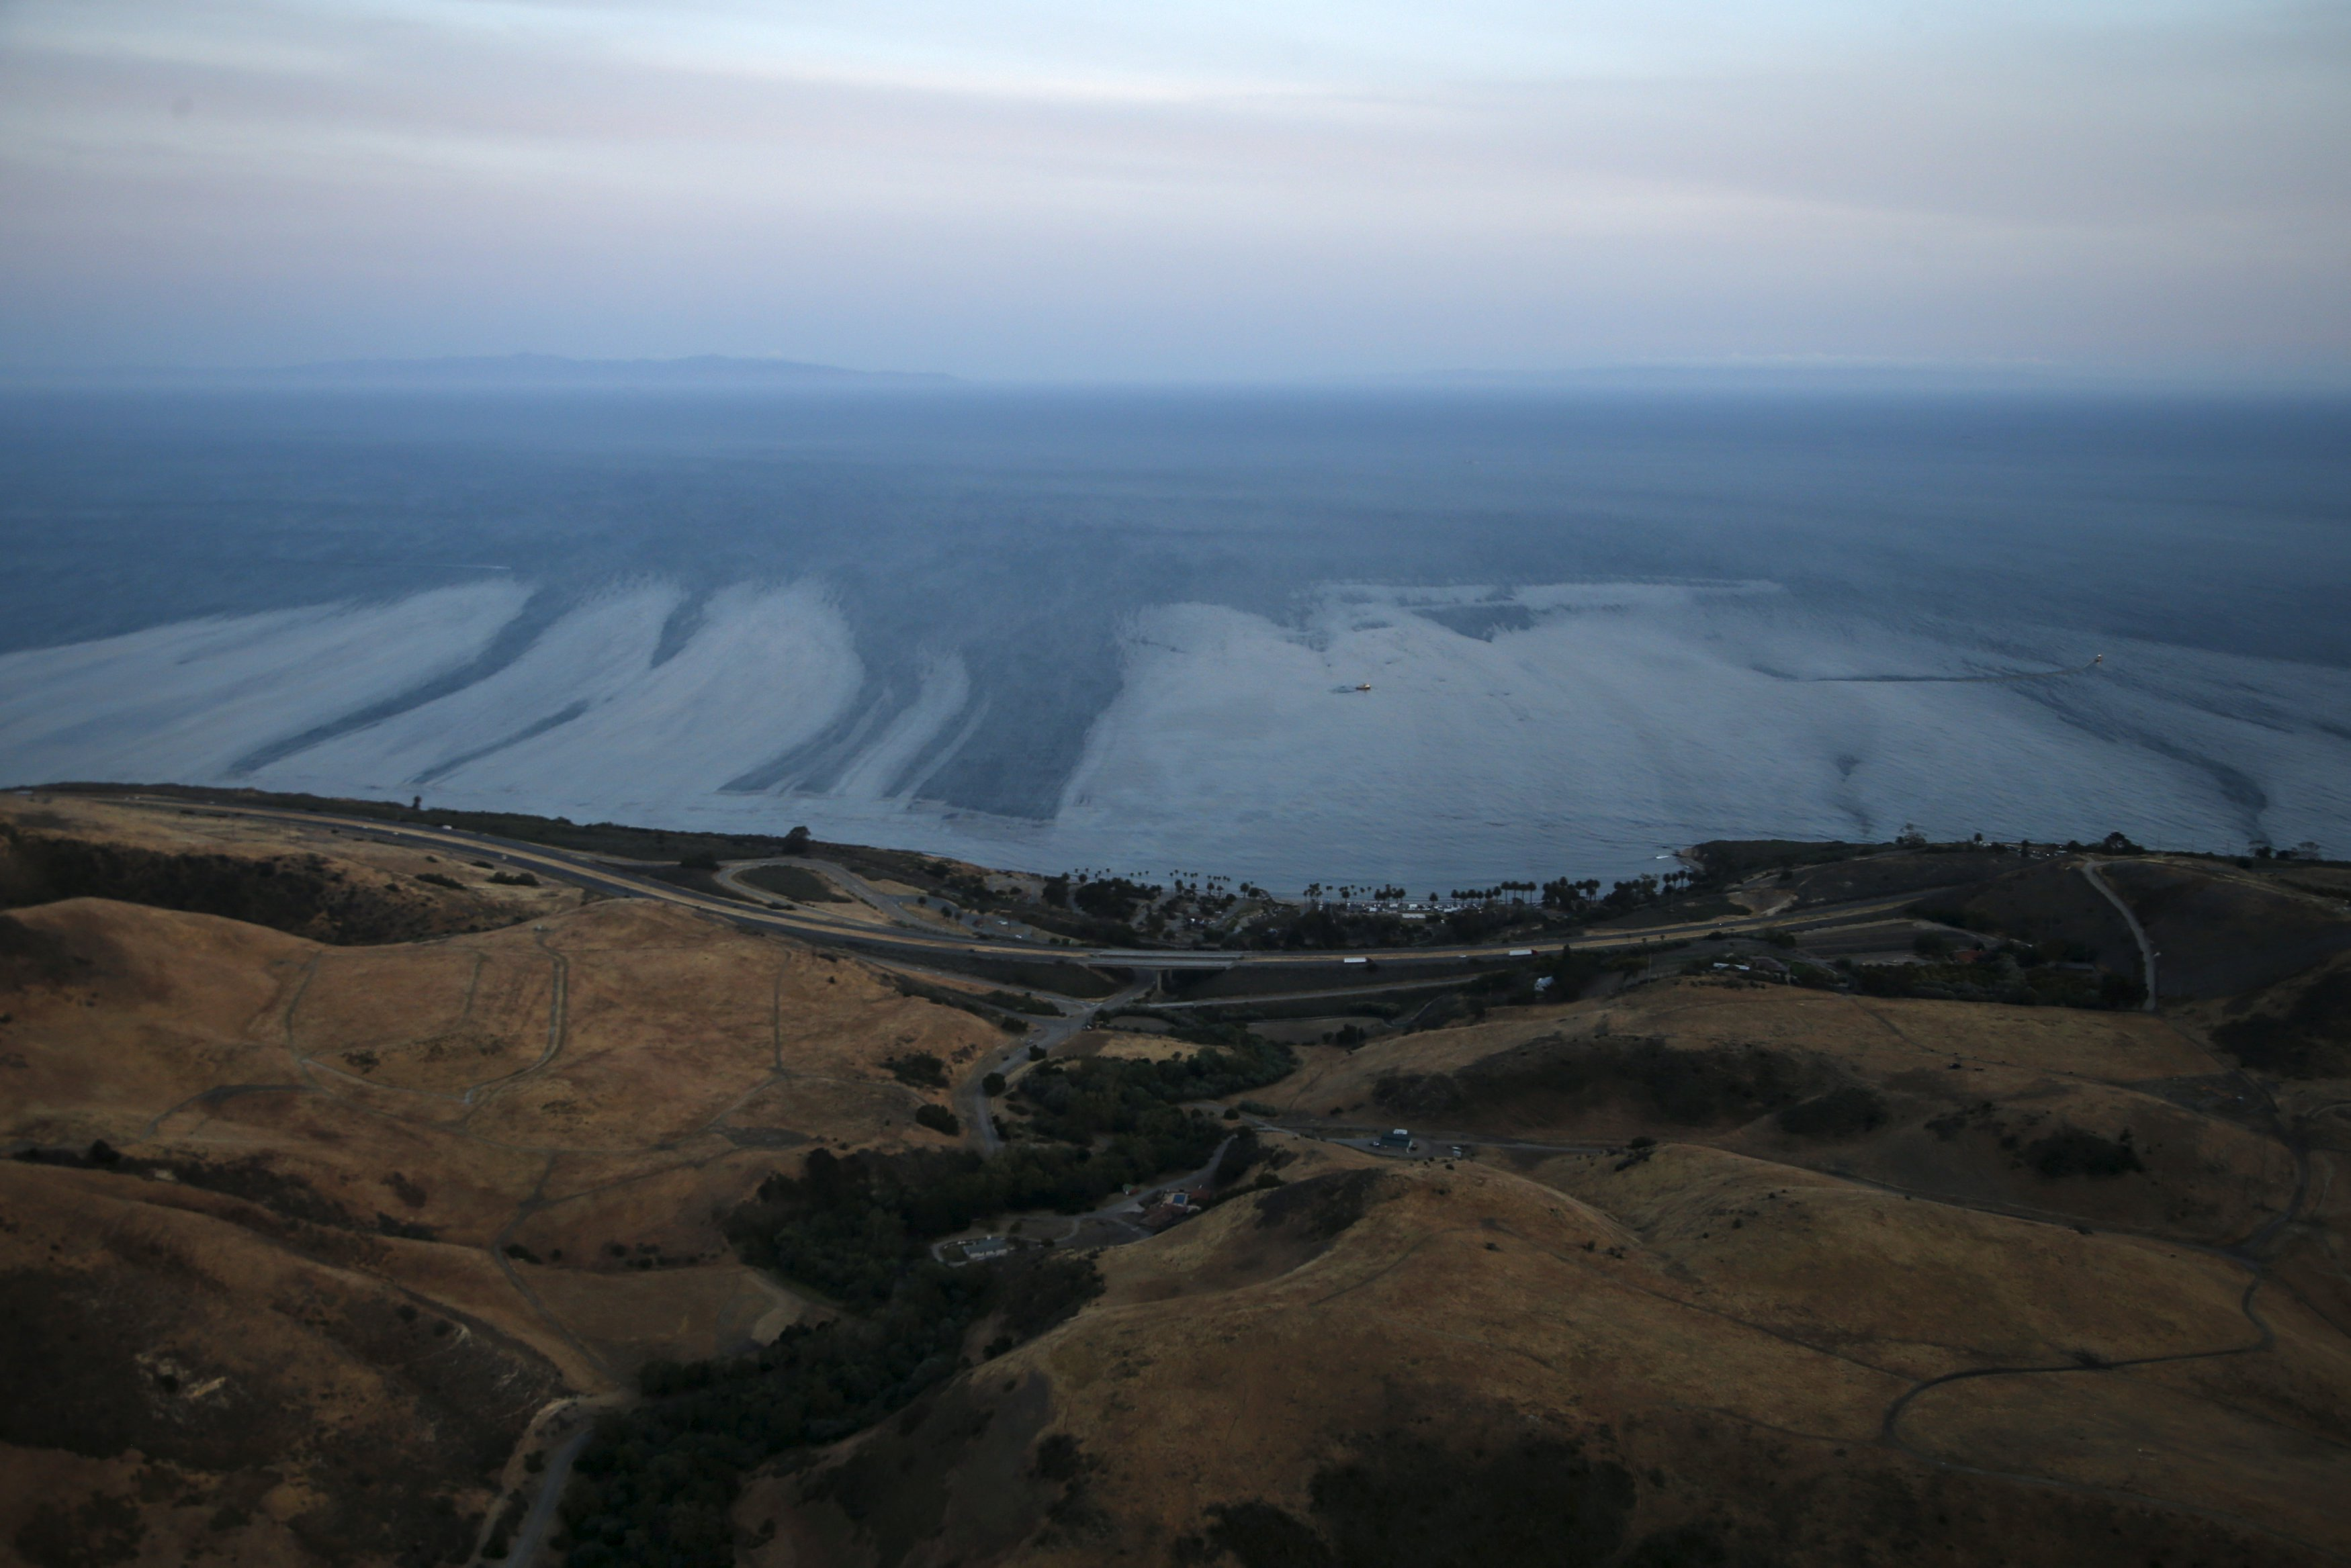 Crisis in California: Innovative technologies under development for cleaning up oil spills